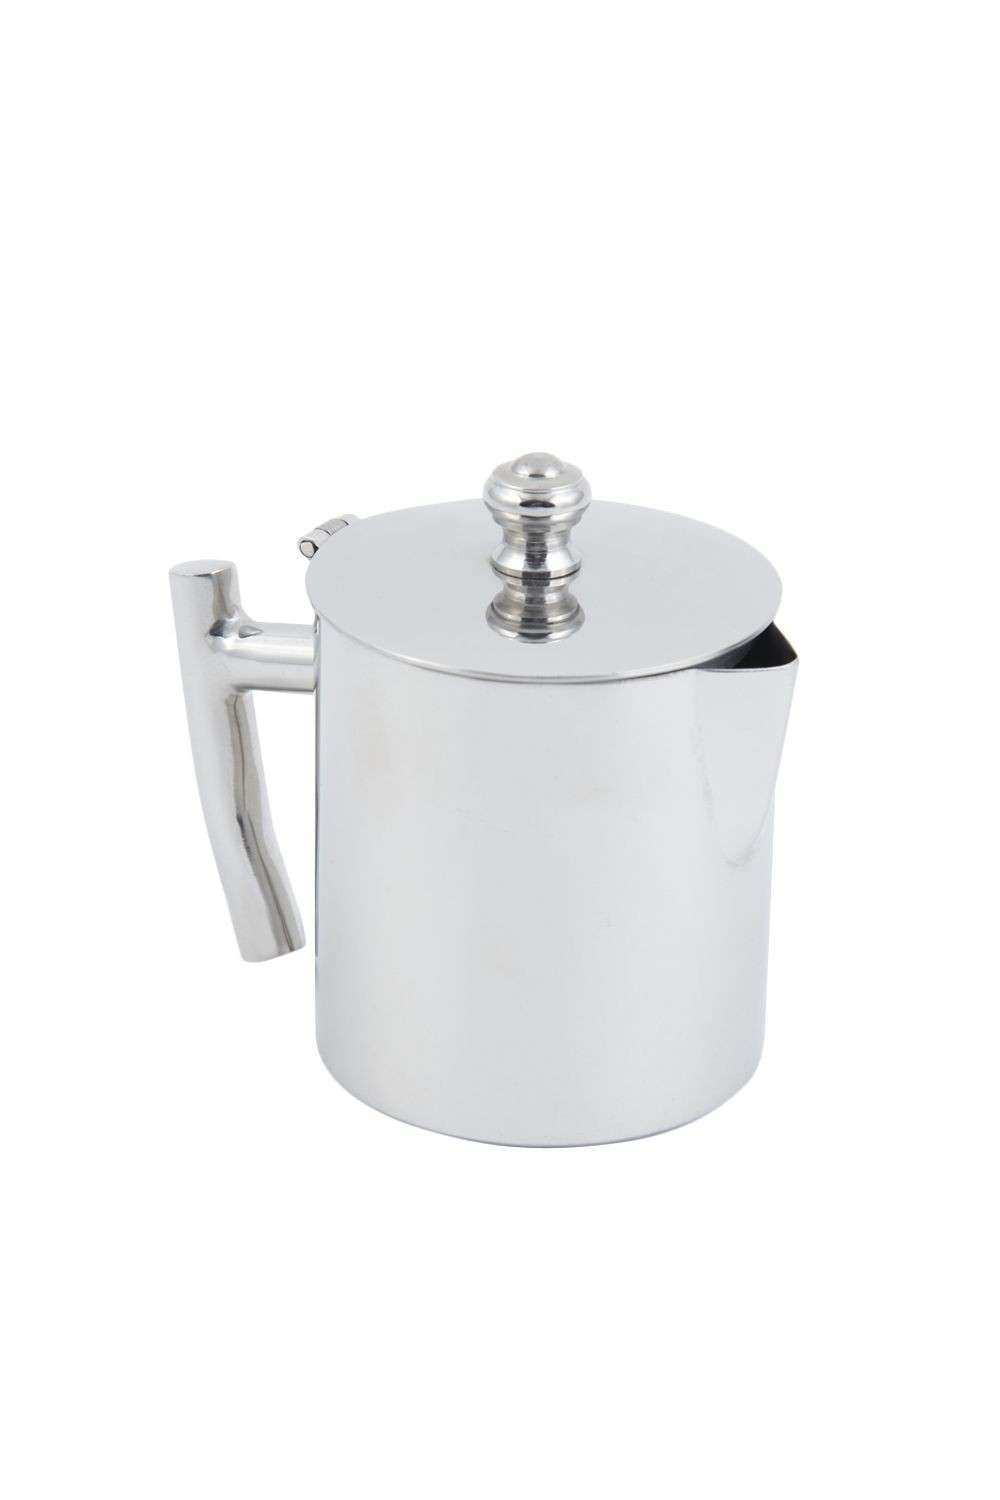 Bon Chef 61306 Empire Collection Stainless Steel Milk Pot, 5 oz.